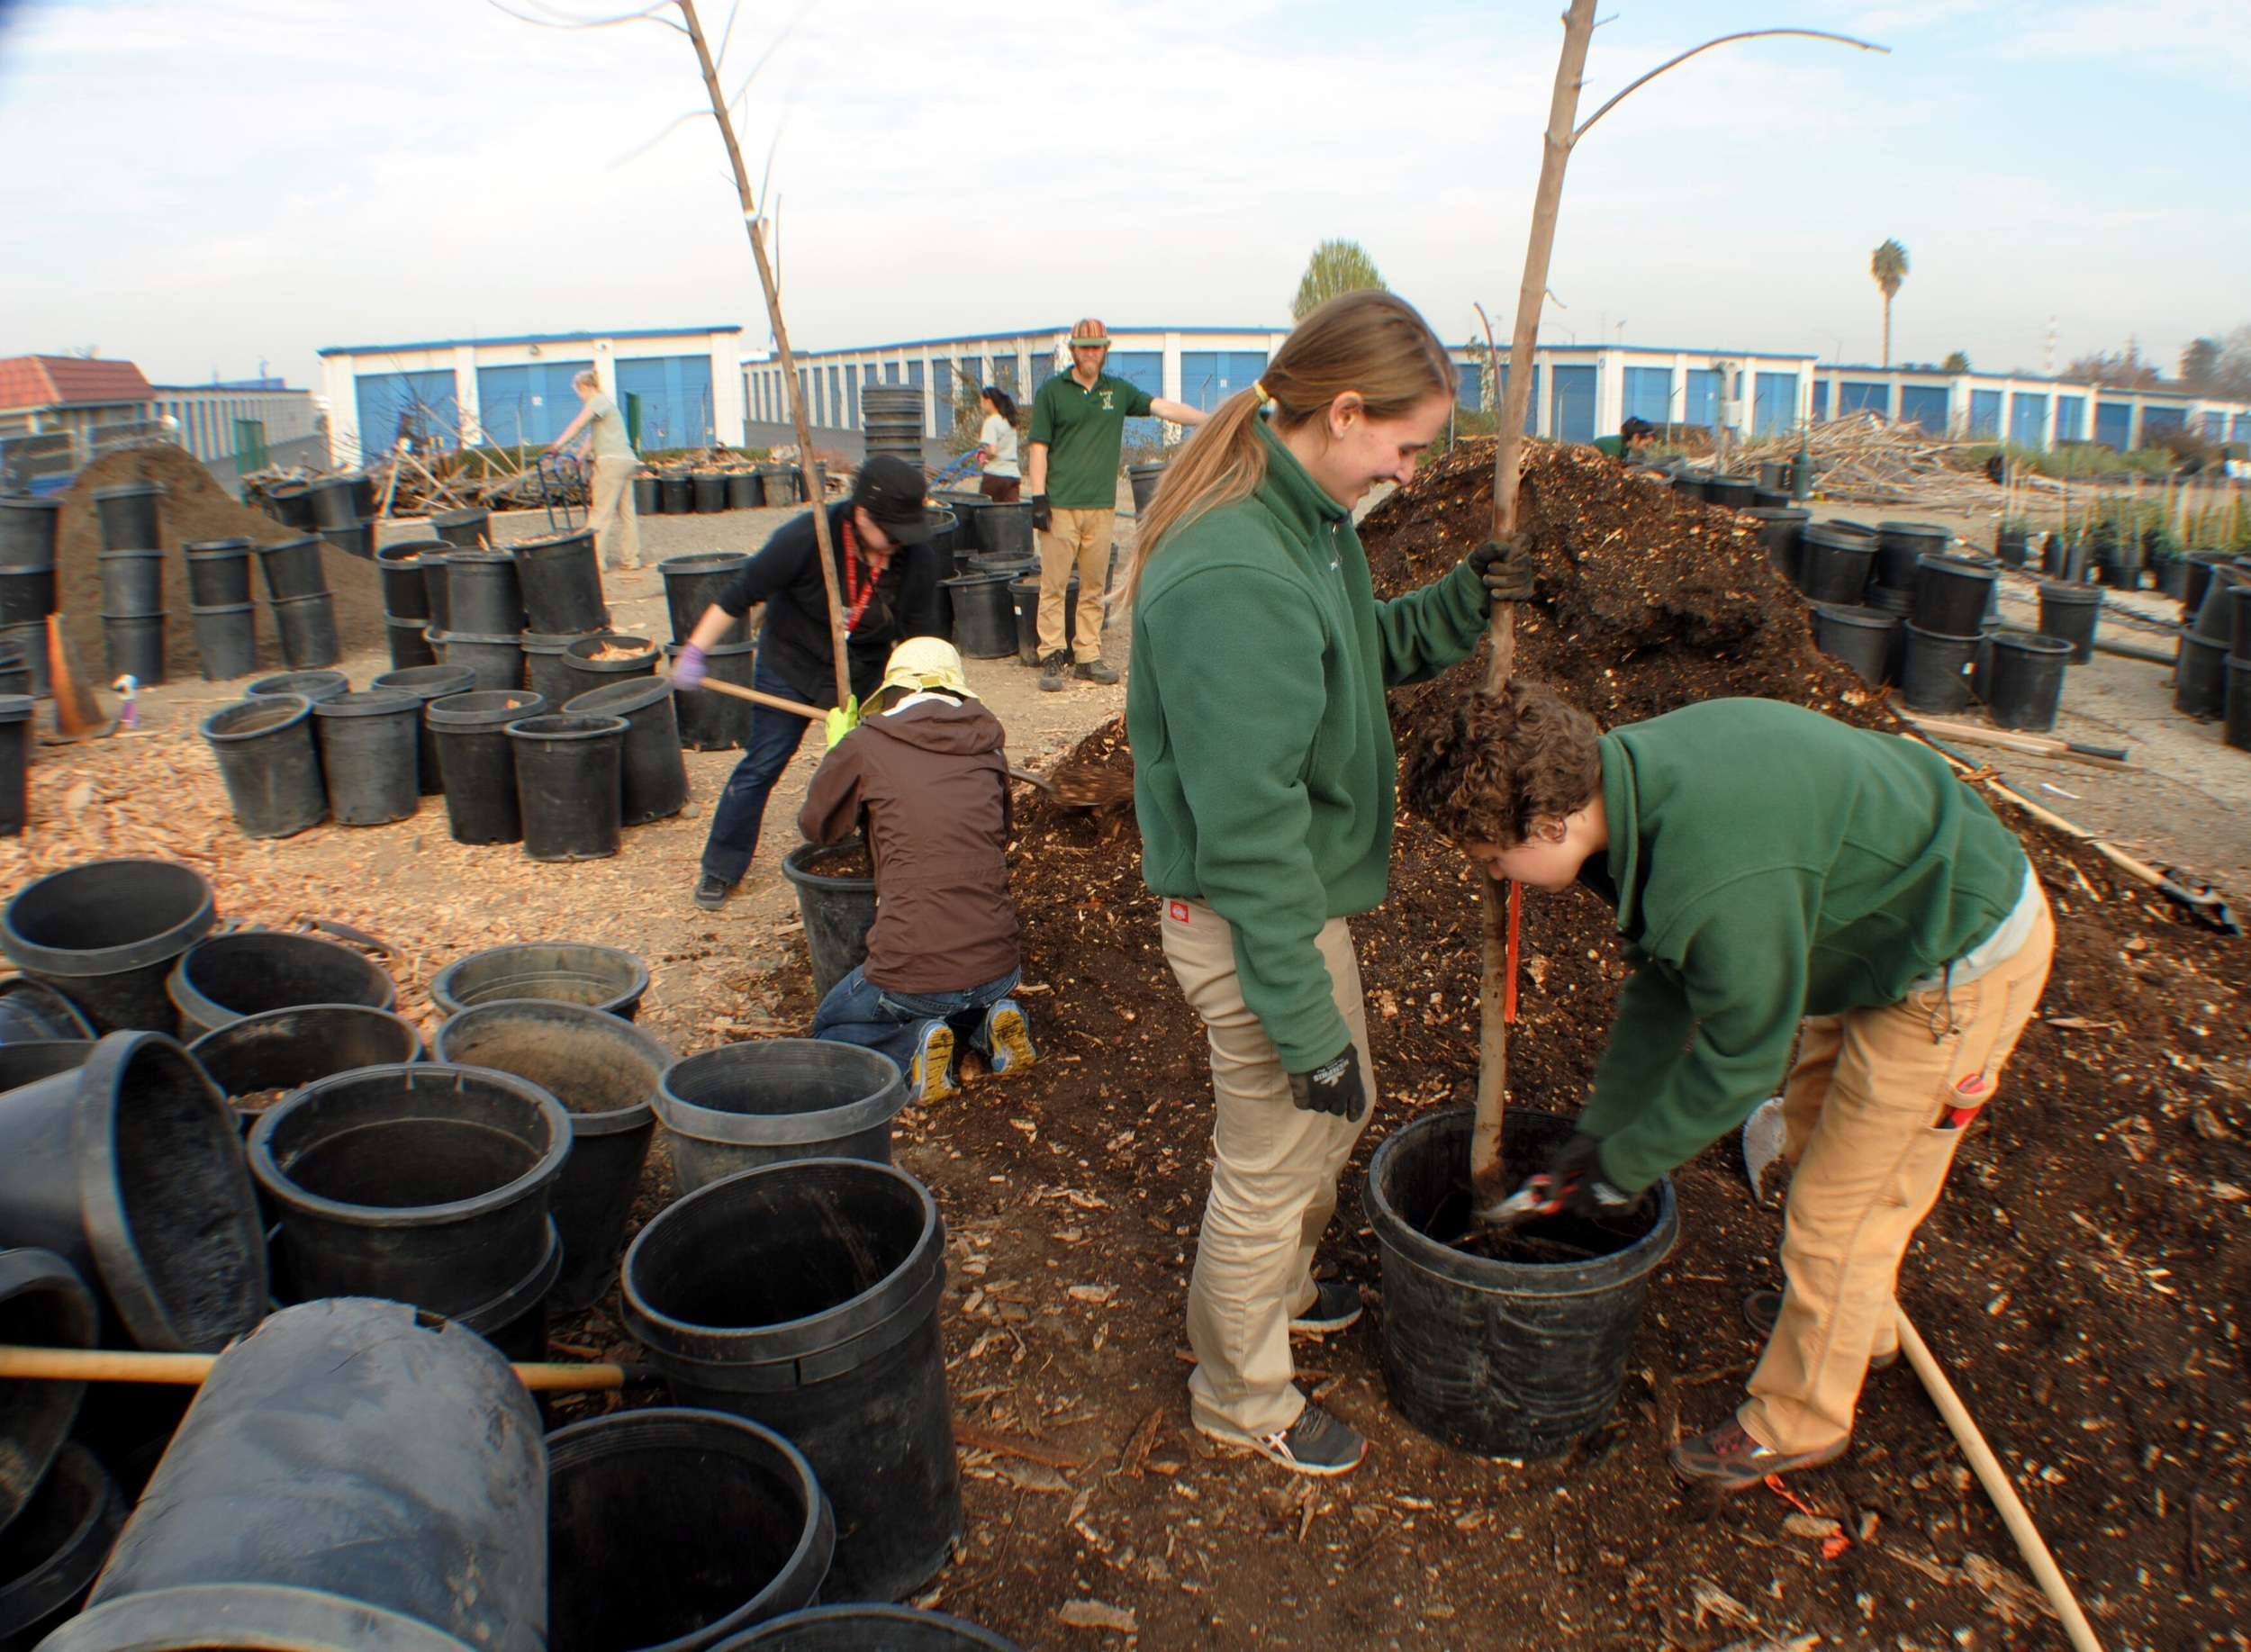 AmeriCorps Service Members potting up bare root trees with volunteers